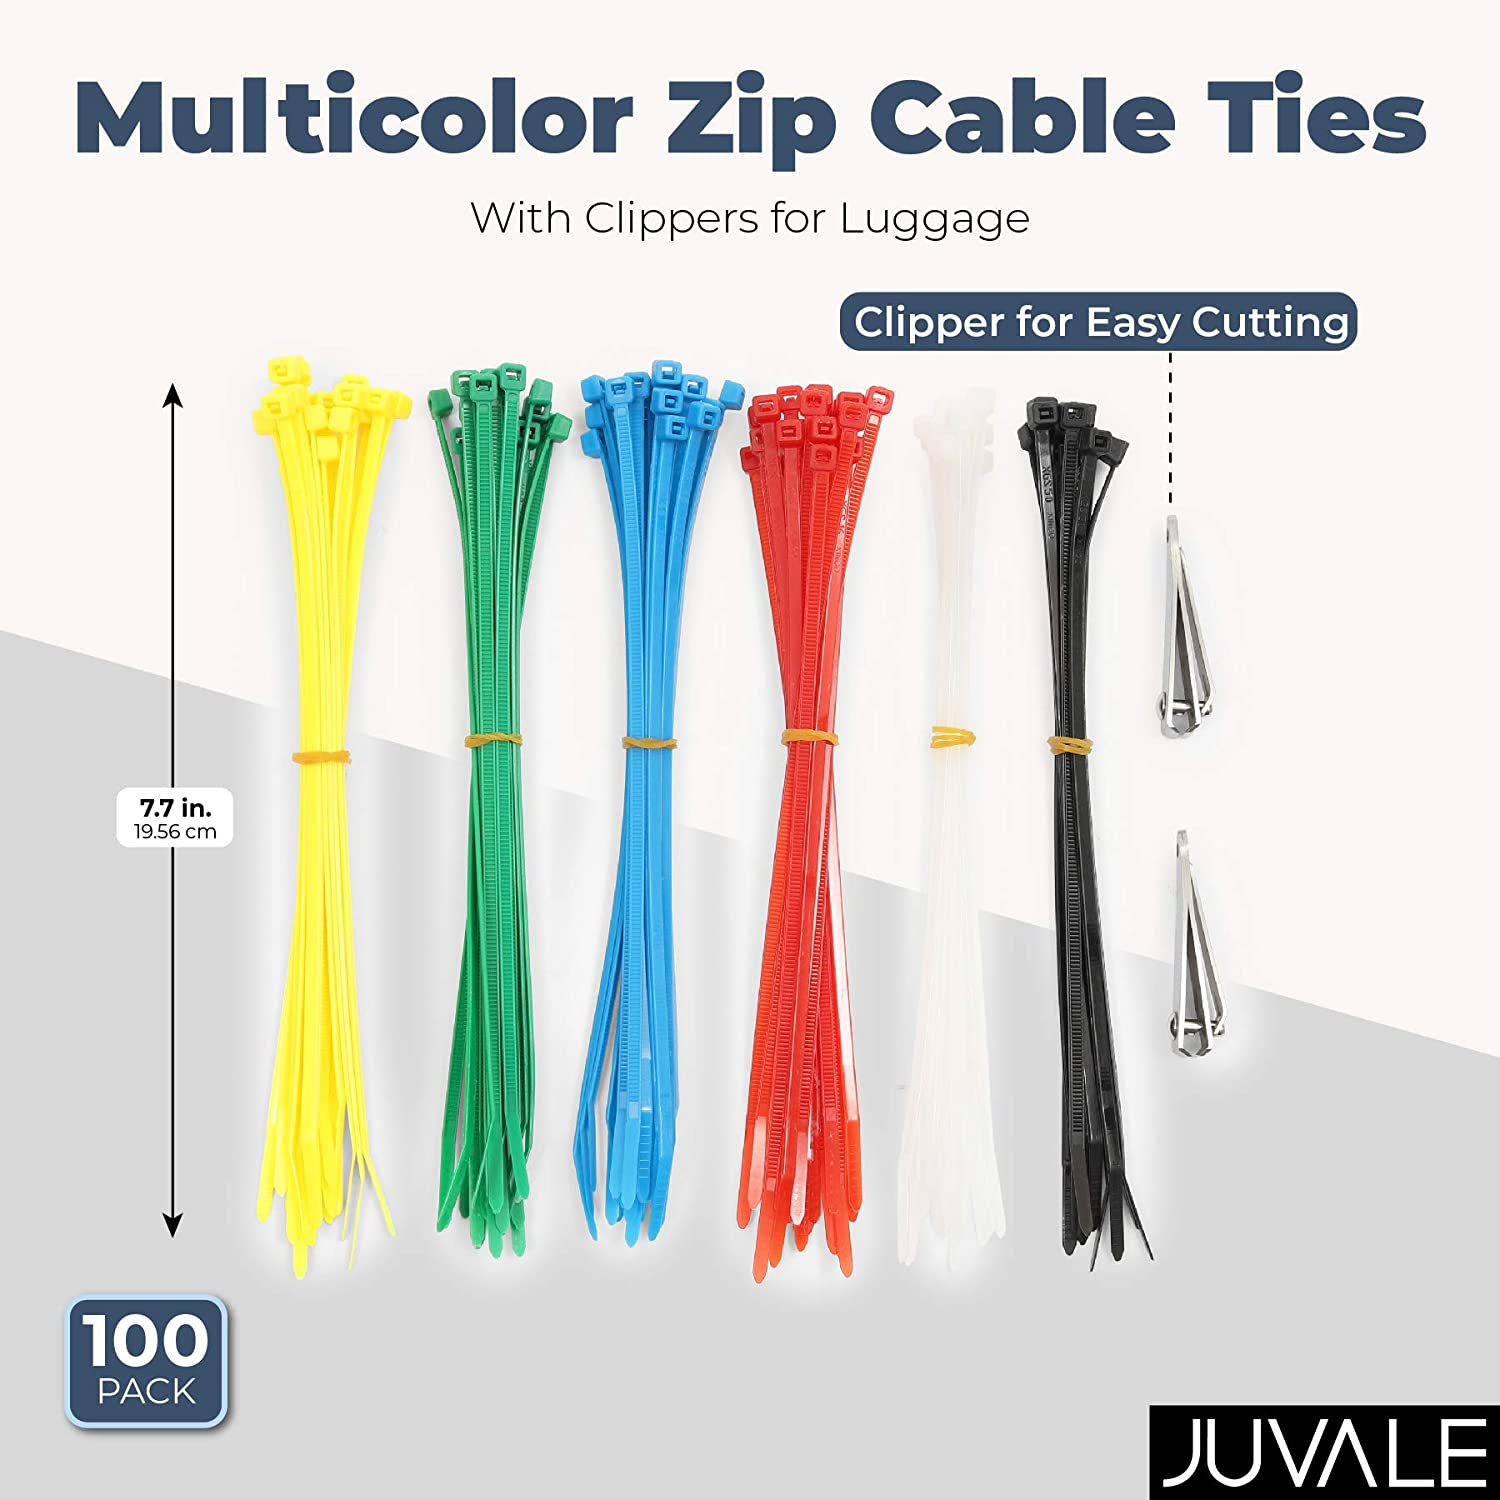 Colorful Zip Ties with 2 Removal Clippers 7.7 in, 100 Pack Perfect Luggage Identifier